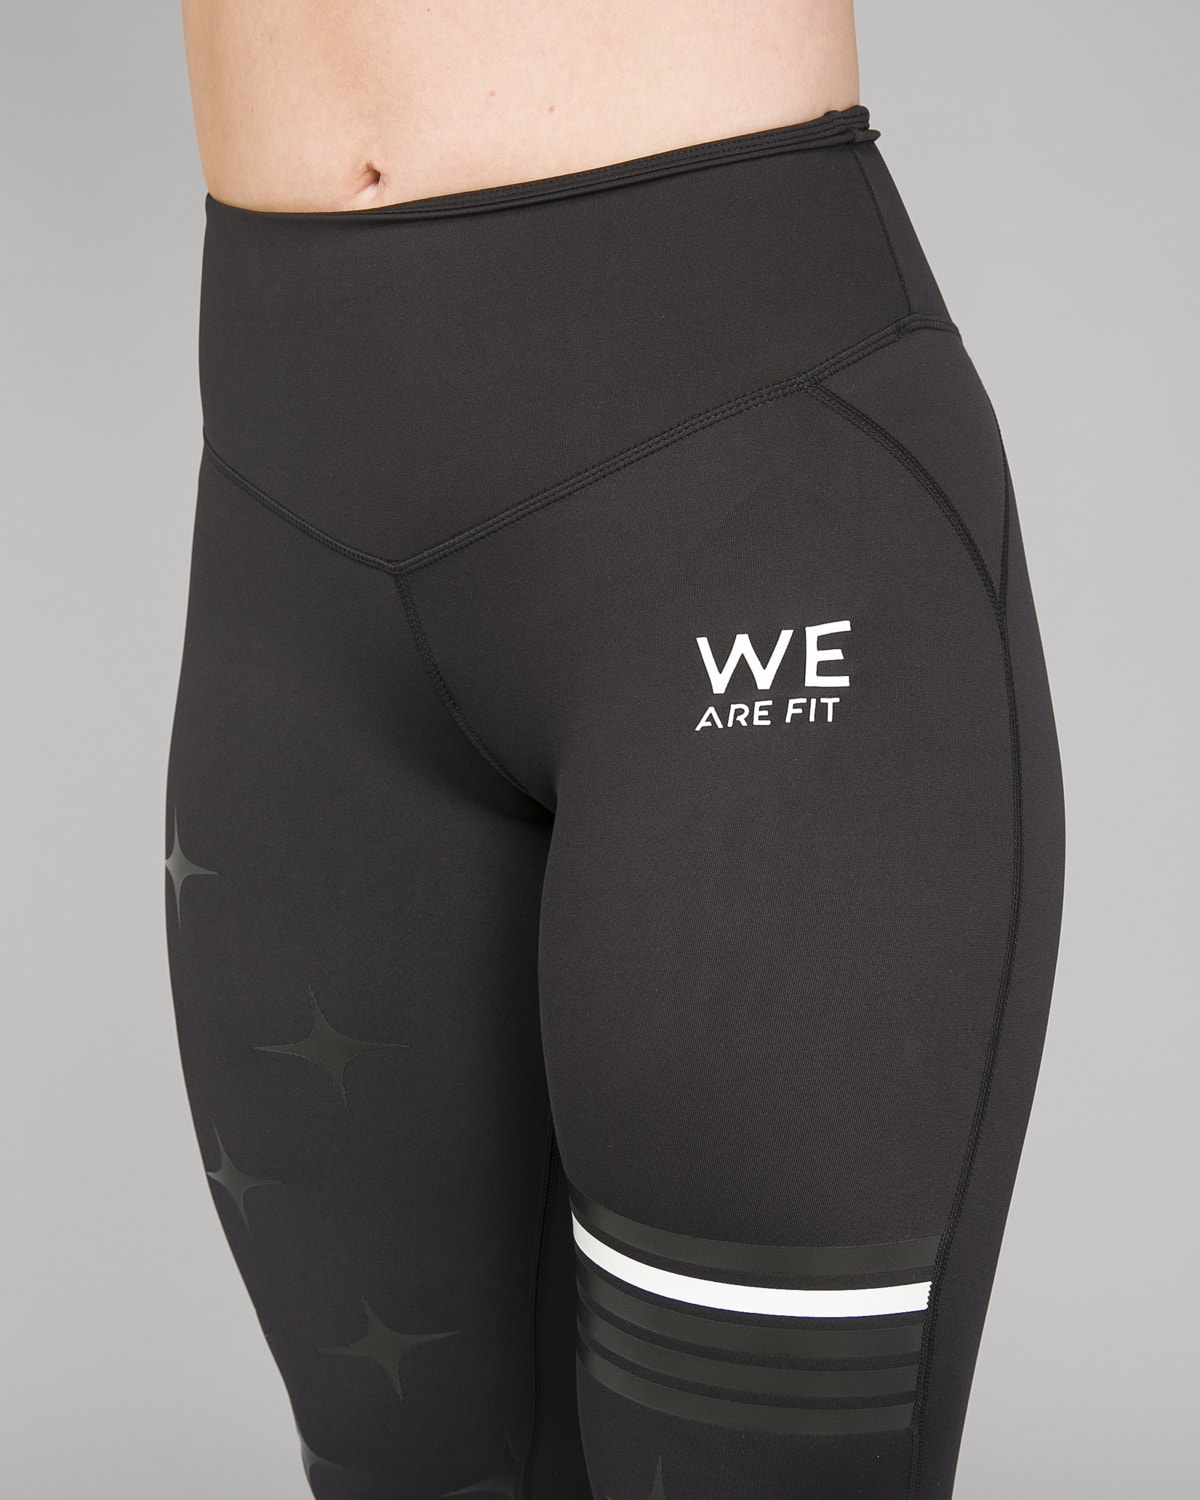 We Are Fit Star Black Tights8